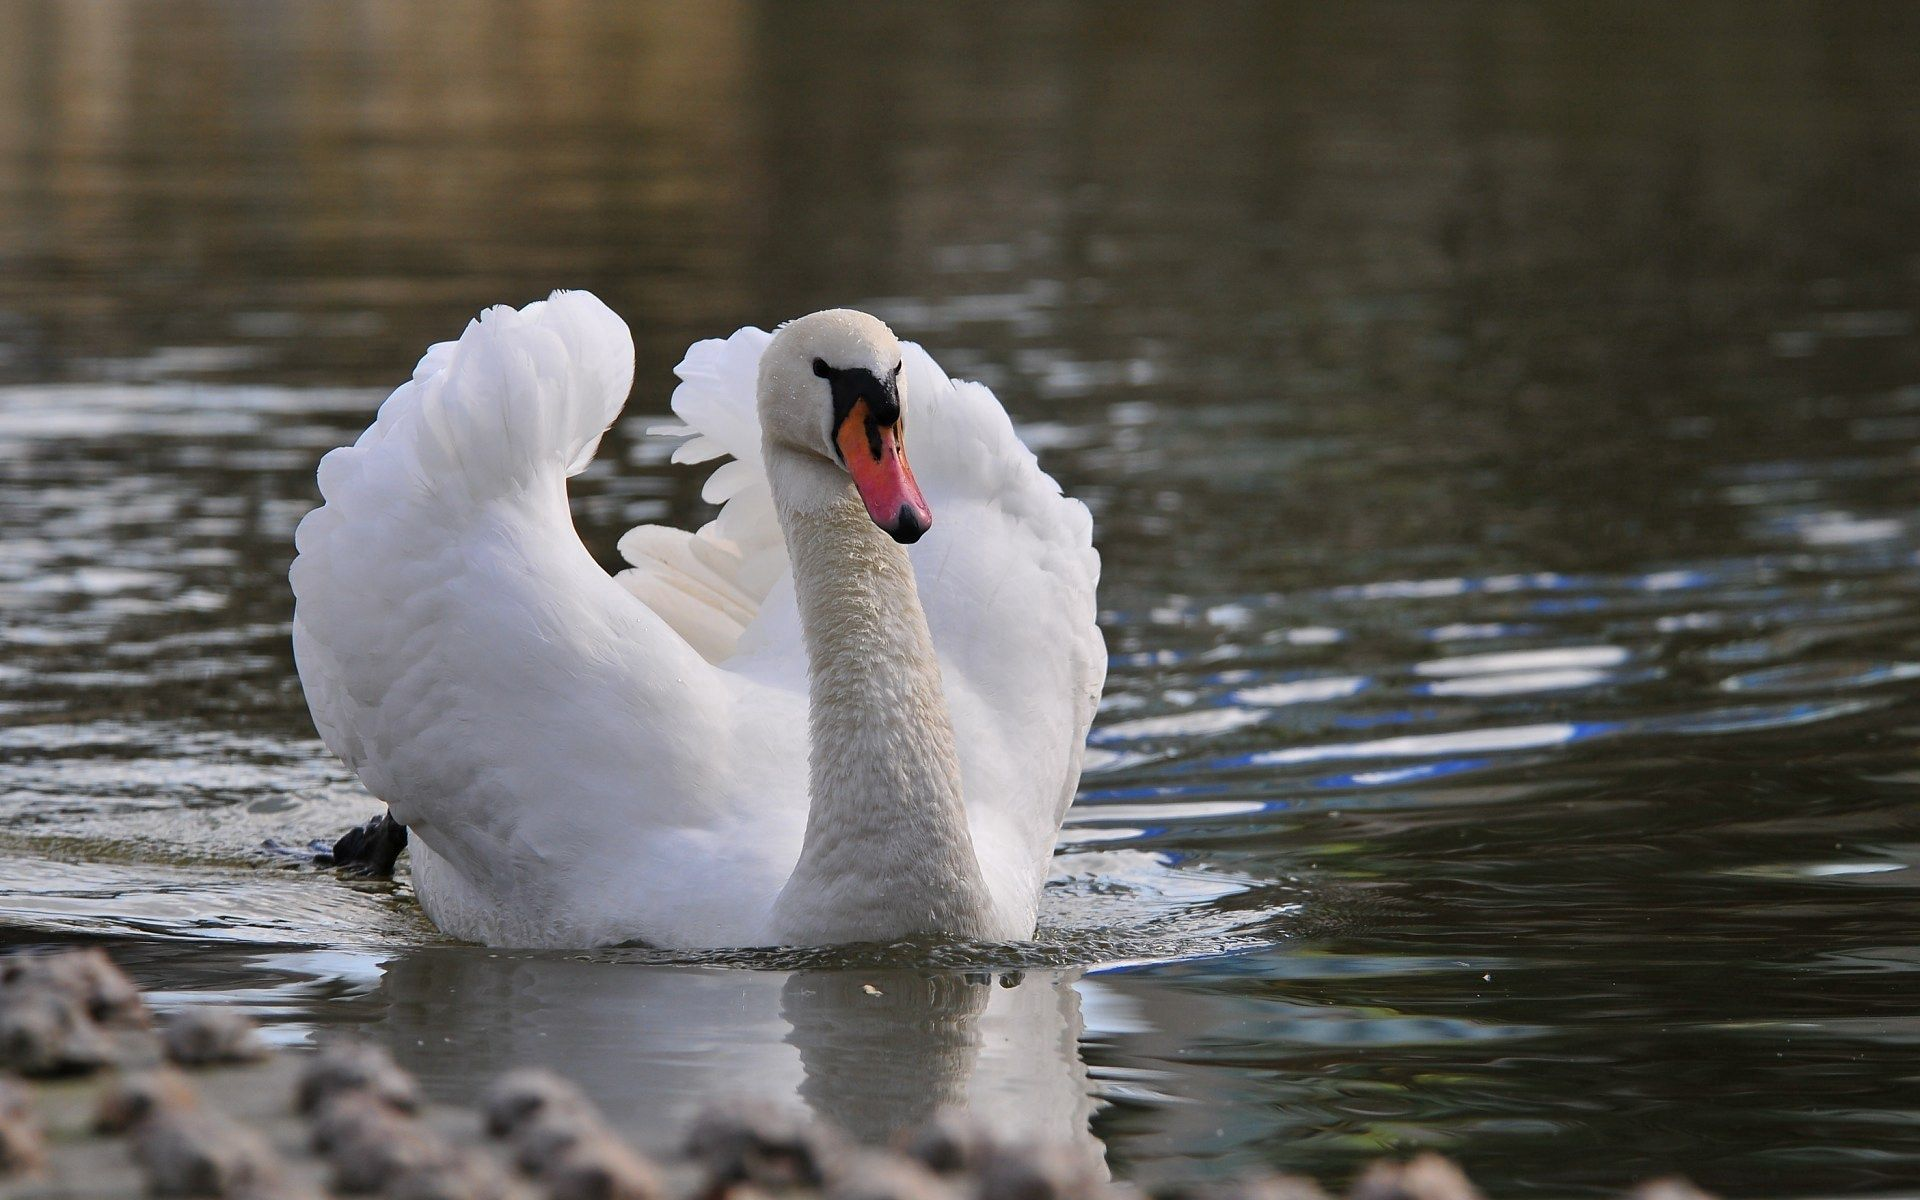 121548 download wallpaper Animals, Water, Feather, Bird, To Swim, Swim, Swan screensavers and pictures for free